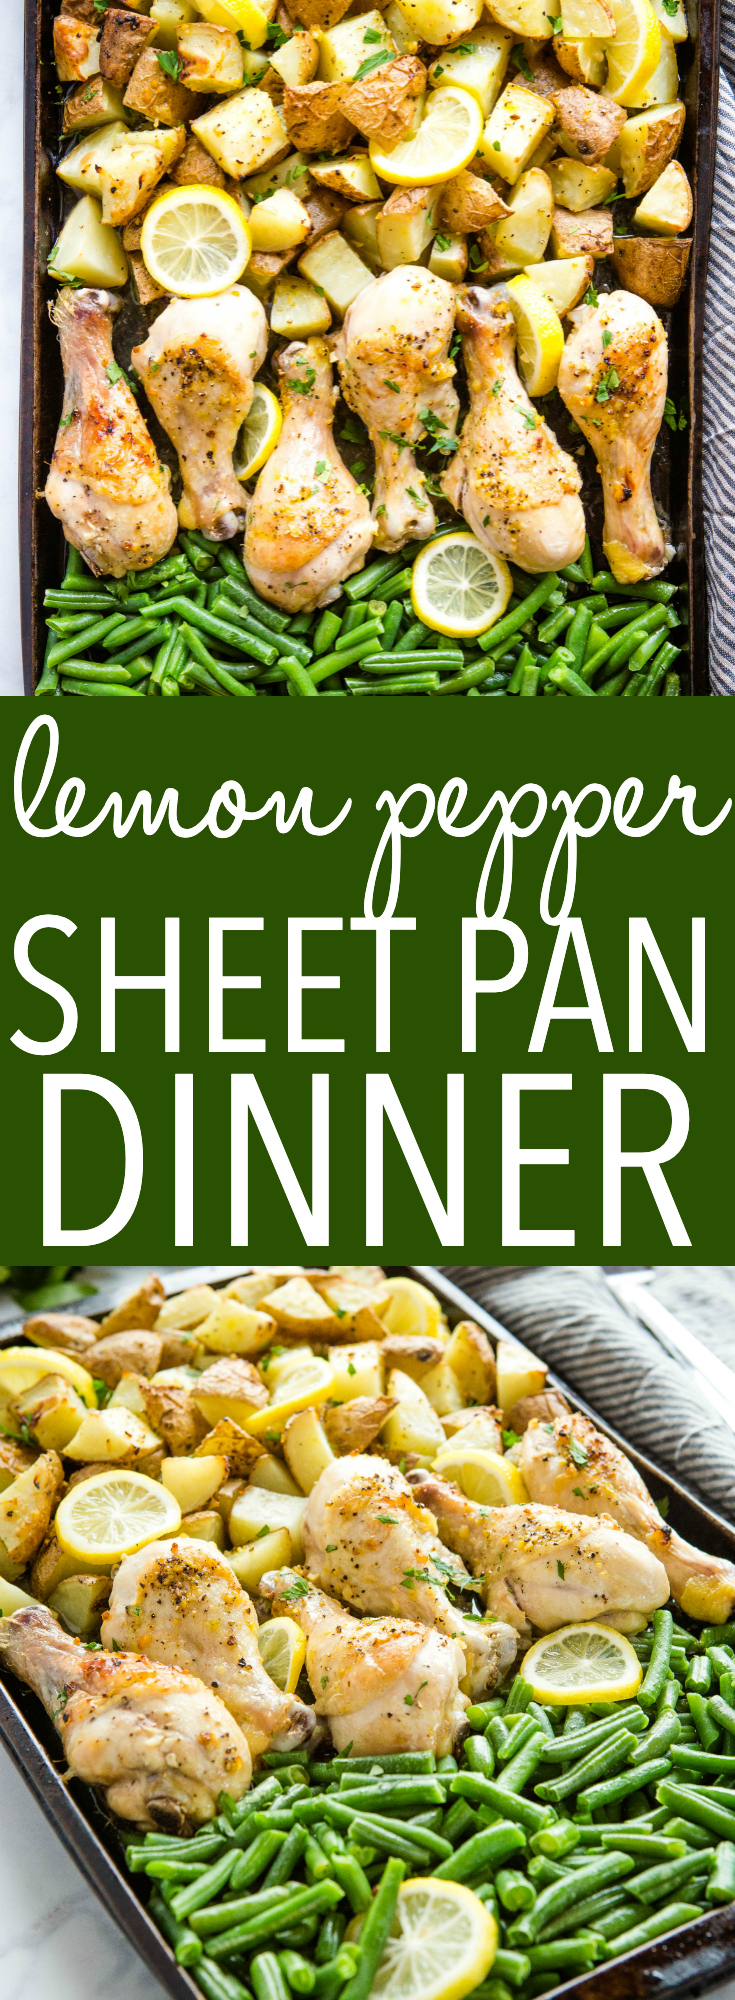 This Easy Lemon Pepper Sheet Pan Dinner is the perfect weeknight meal idea for busy families made all on one pan - juicy chicken, tender potatoes and green beans, bursting with lemon pepper flavour! Recipe from thebusybaker.ca! #chicken #lemonpepper #greenbeans #potatoes #sheetpandinner #onepot #weeknightmeal #easydinner #familymeal via @busybakerblog